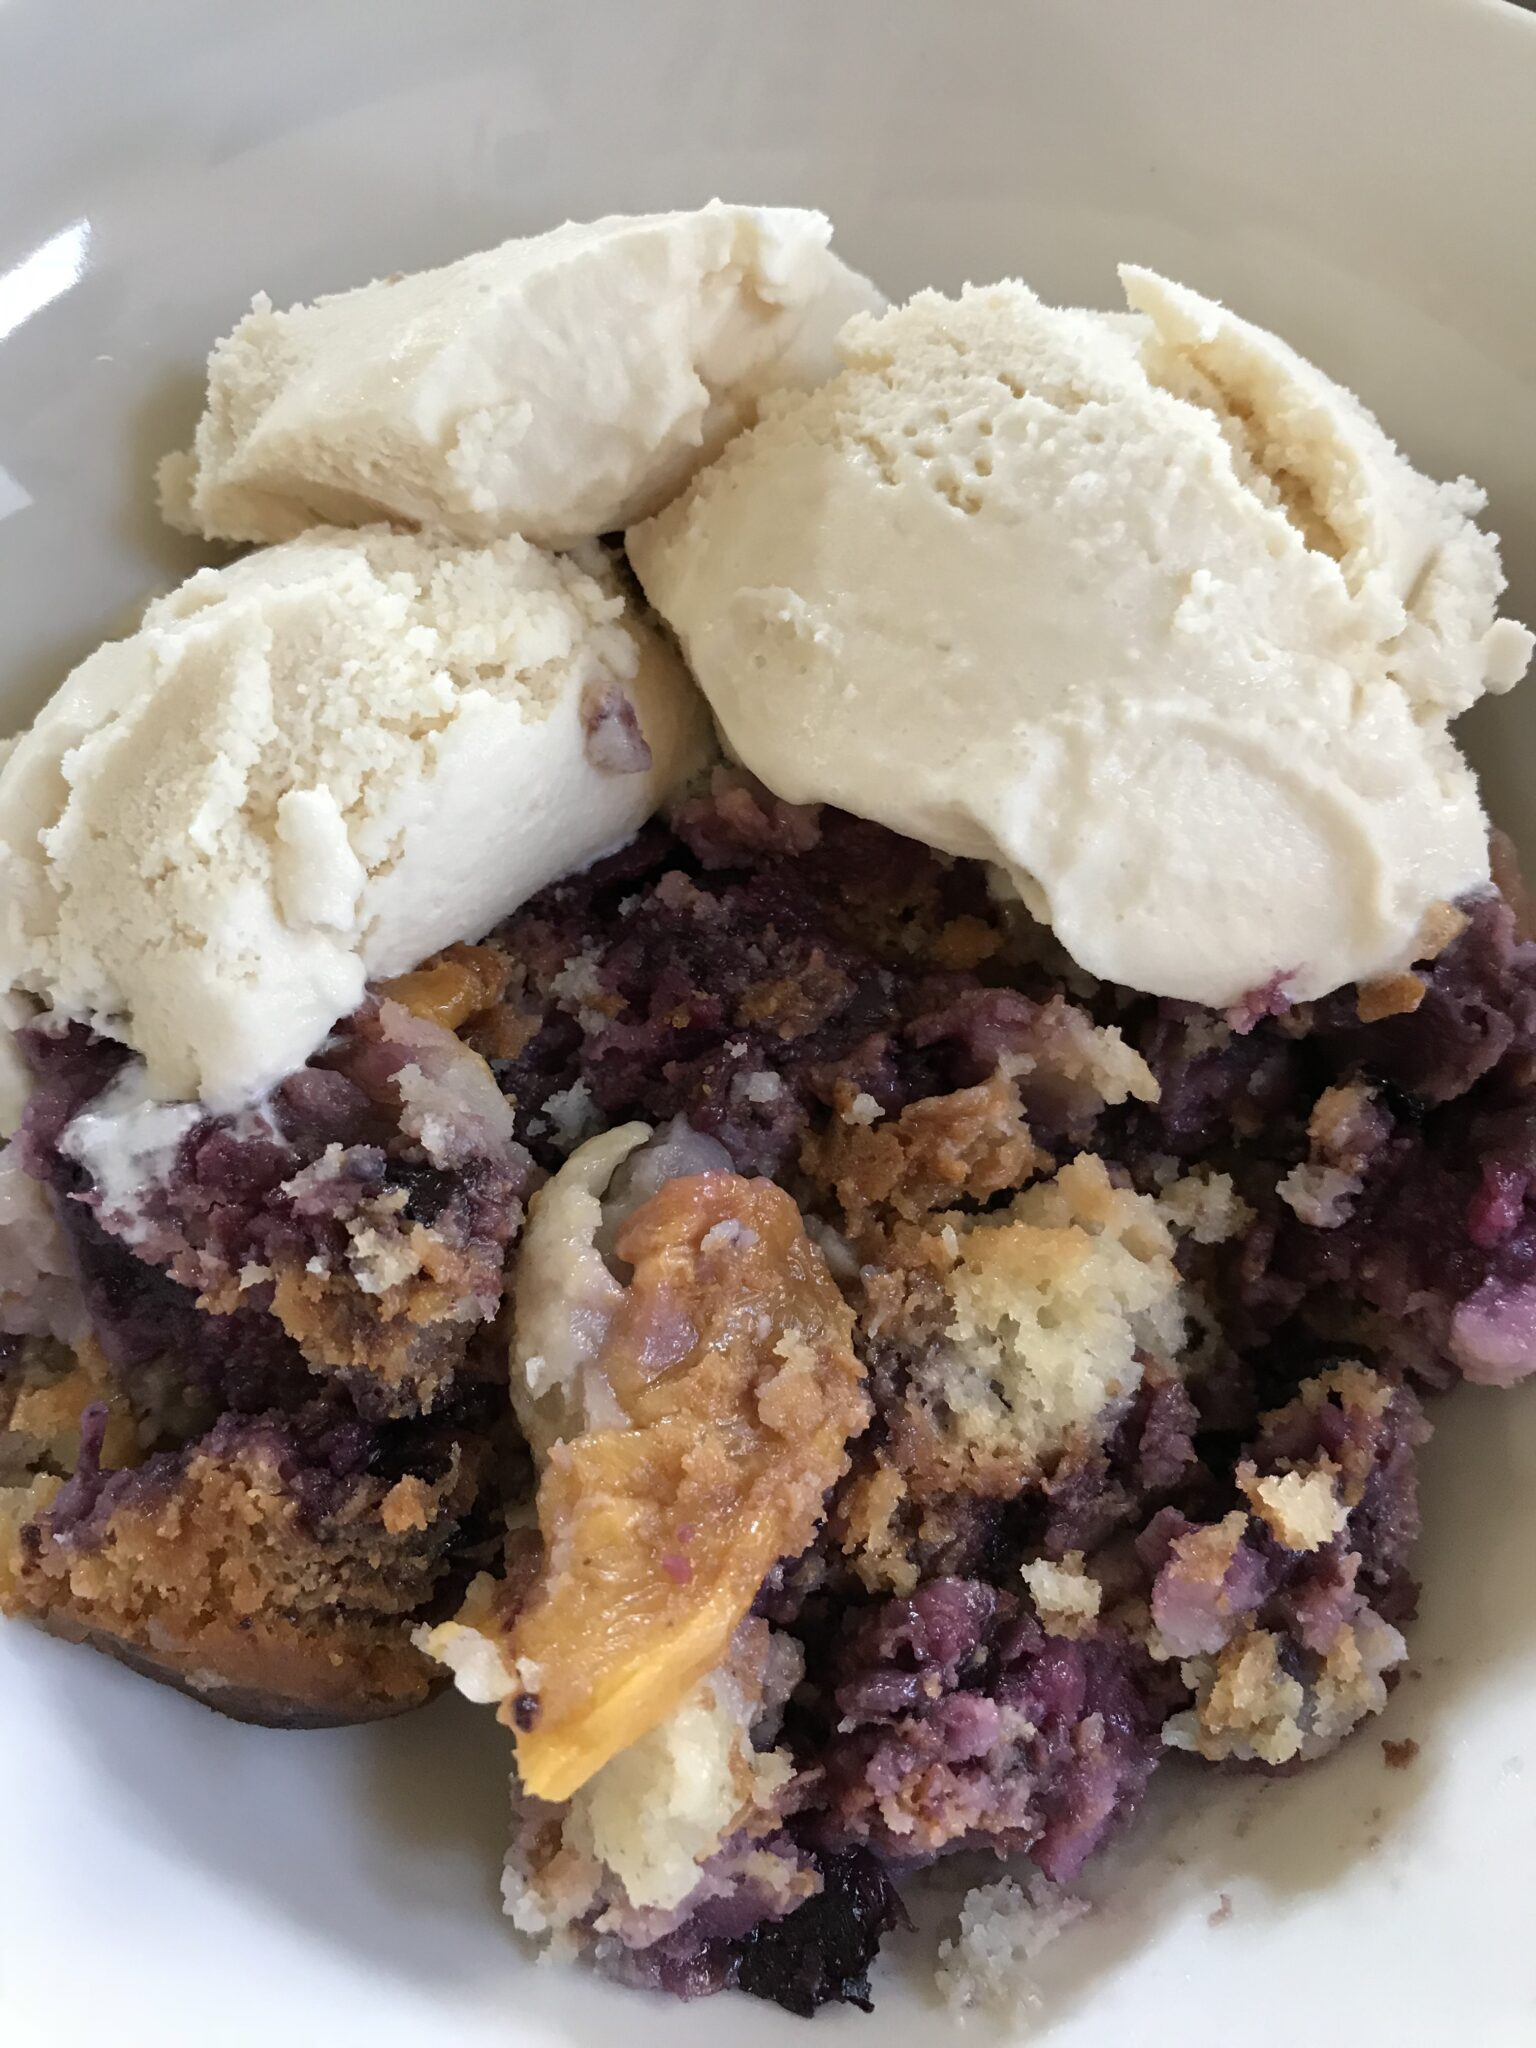 Life Is Short So Let's Make Dessert – Peach & Blueberry Cobbler And Vanilla Ice Cream